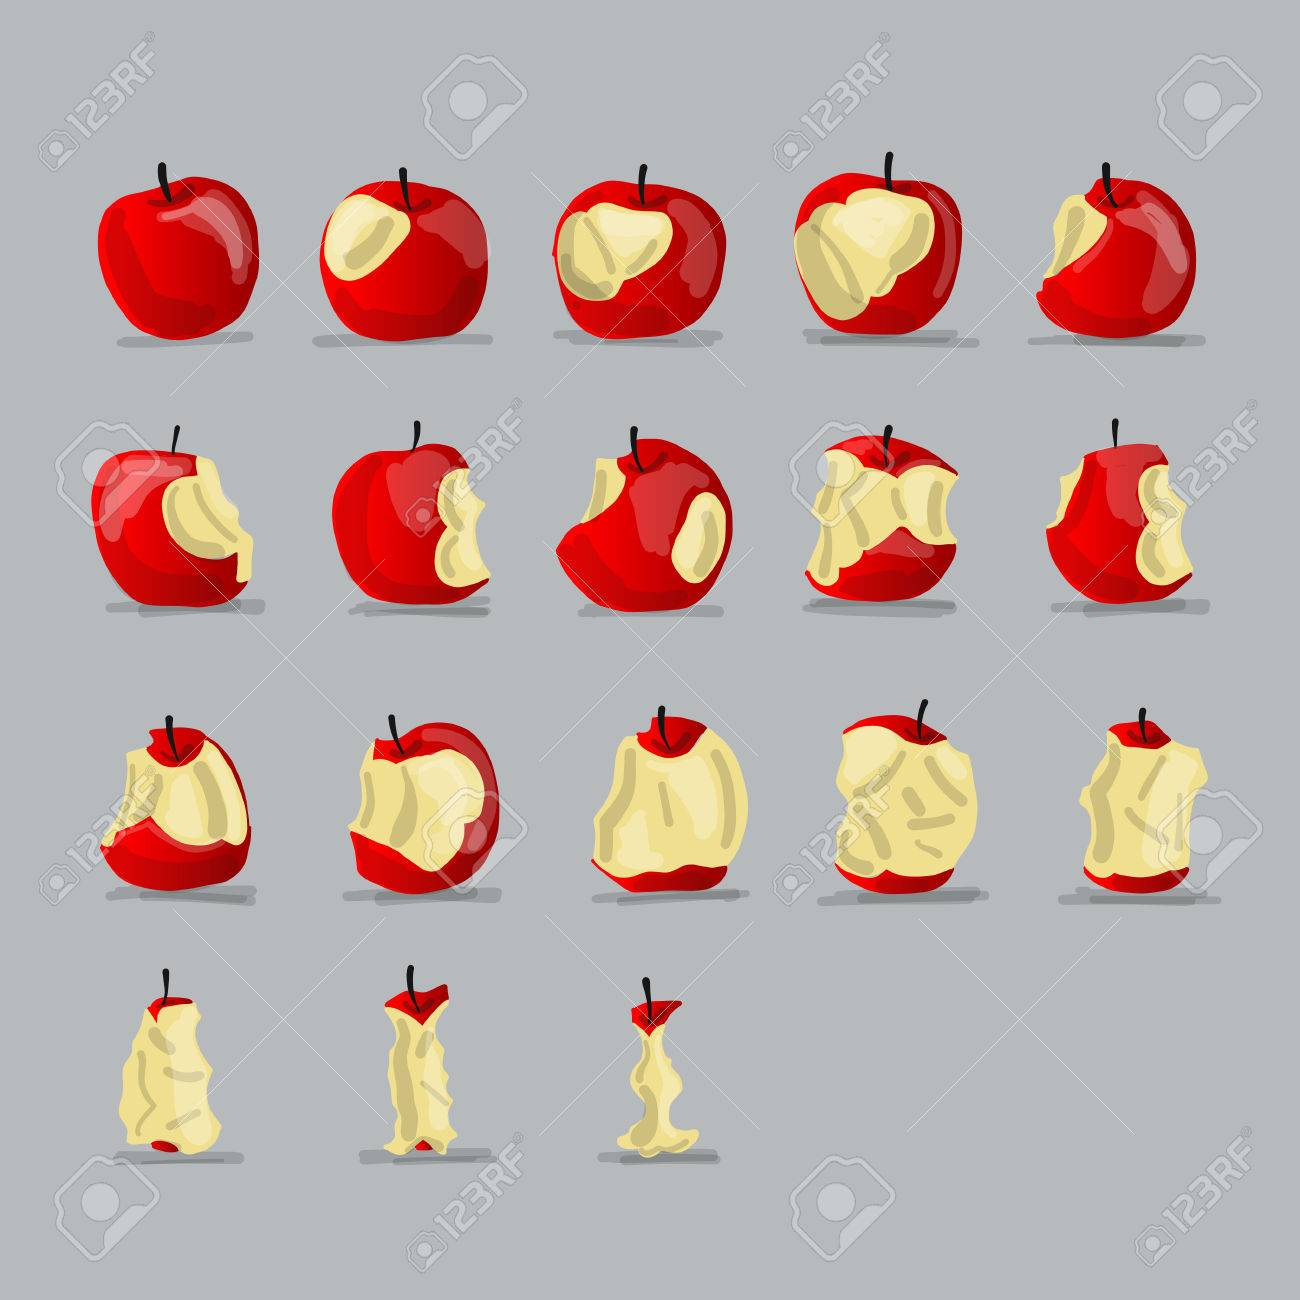 Stages of eating apple, sketch for your design - 84999150